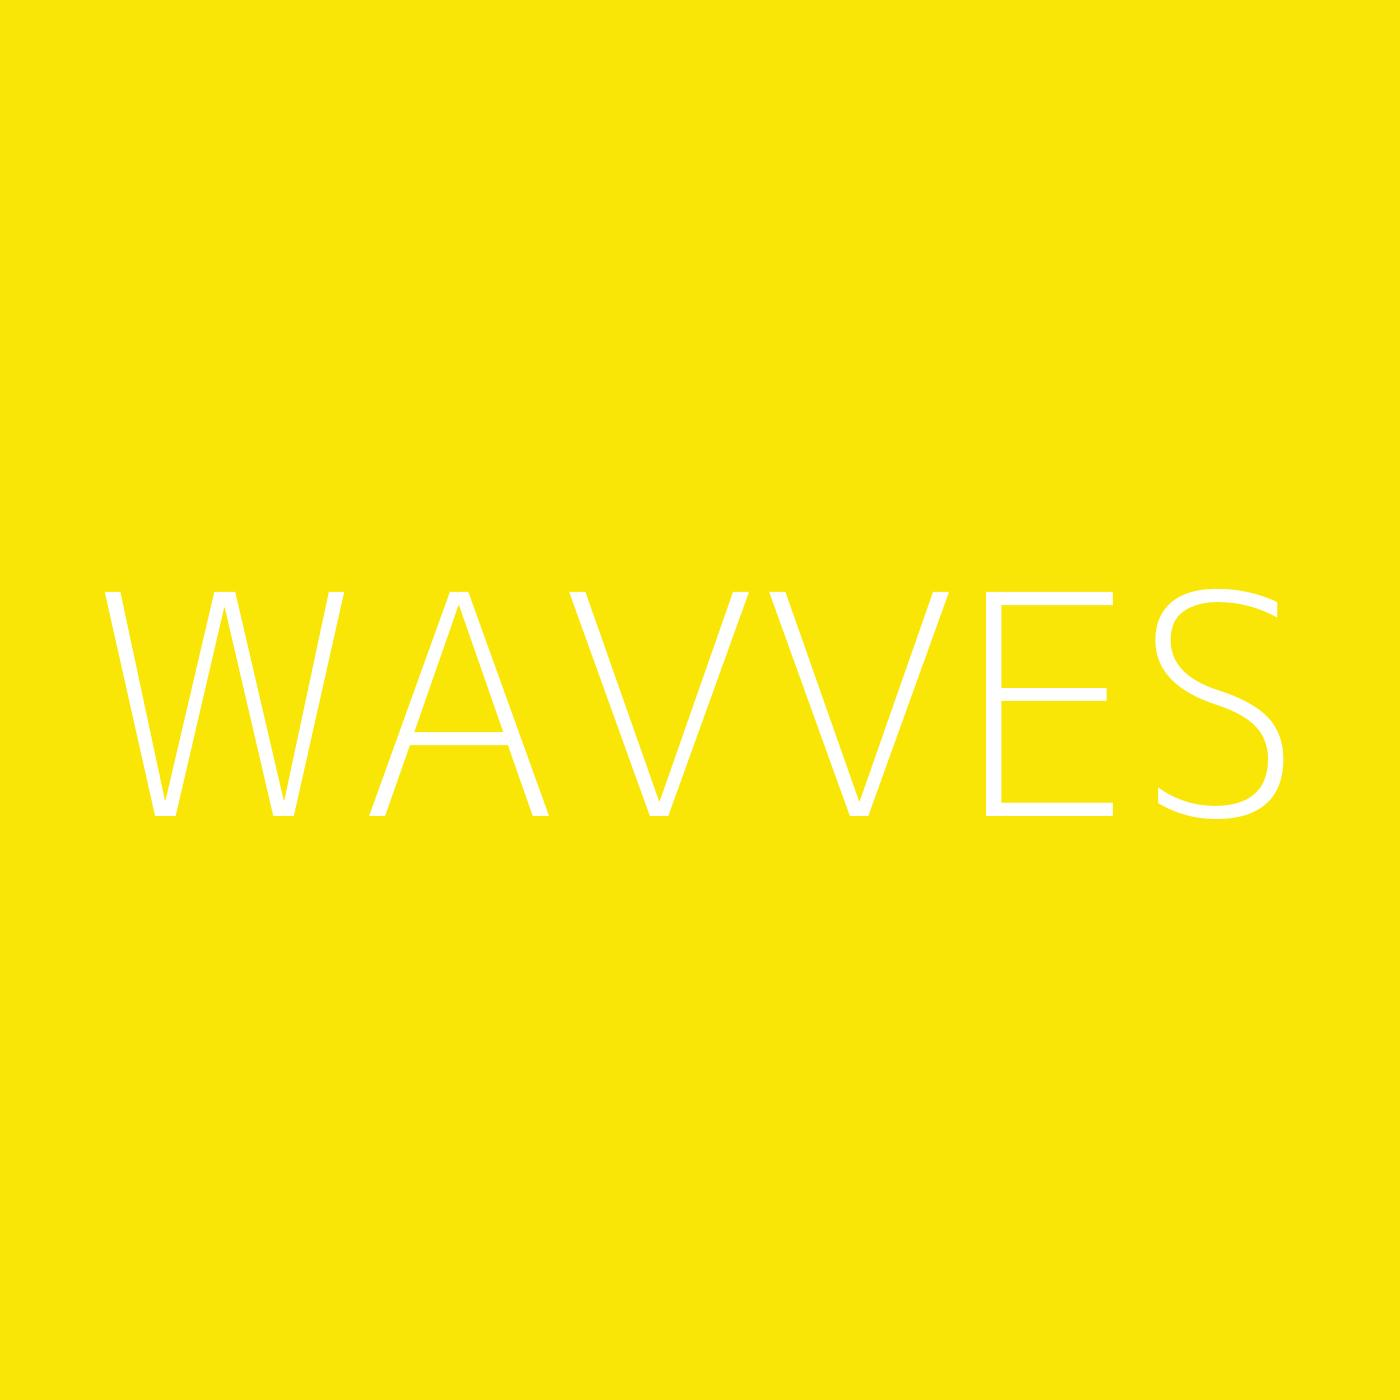 Wavves Playlist Artwork